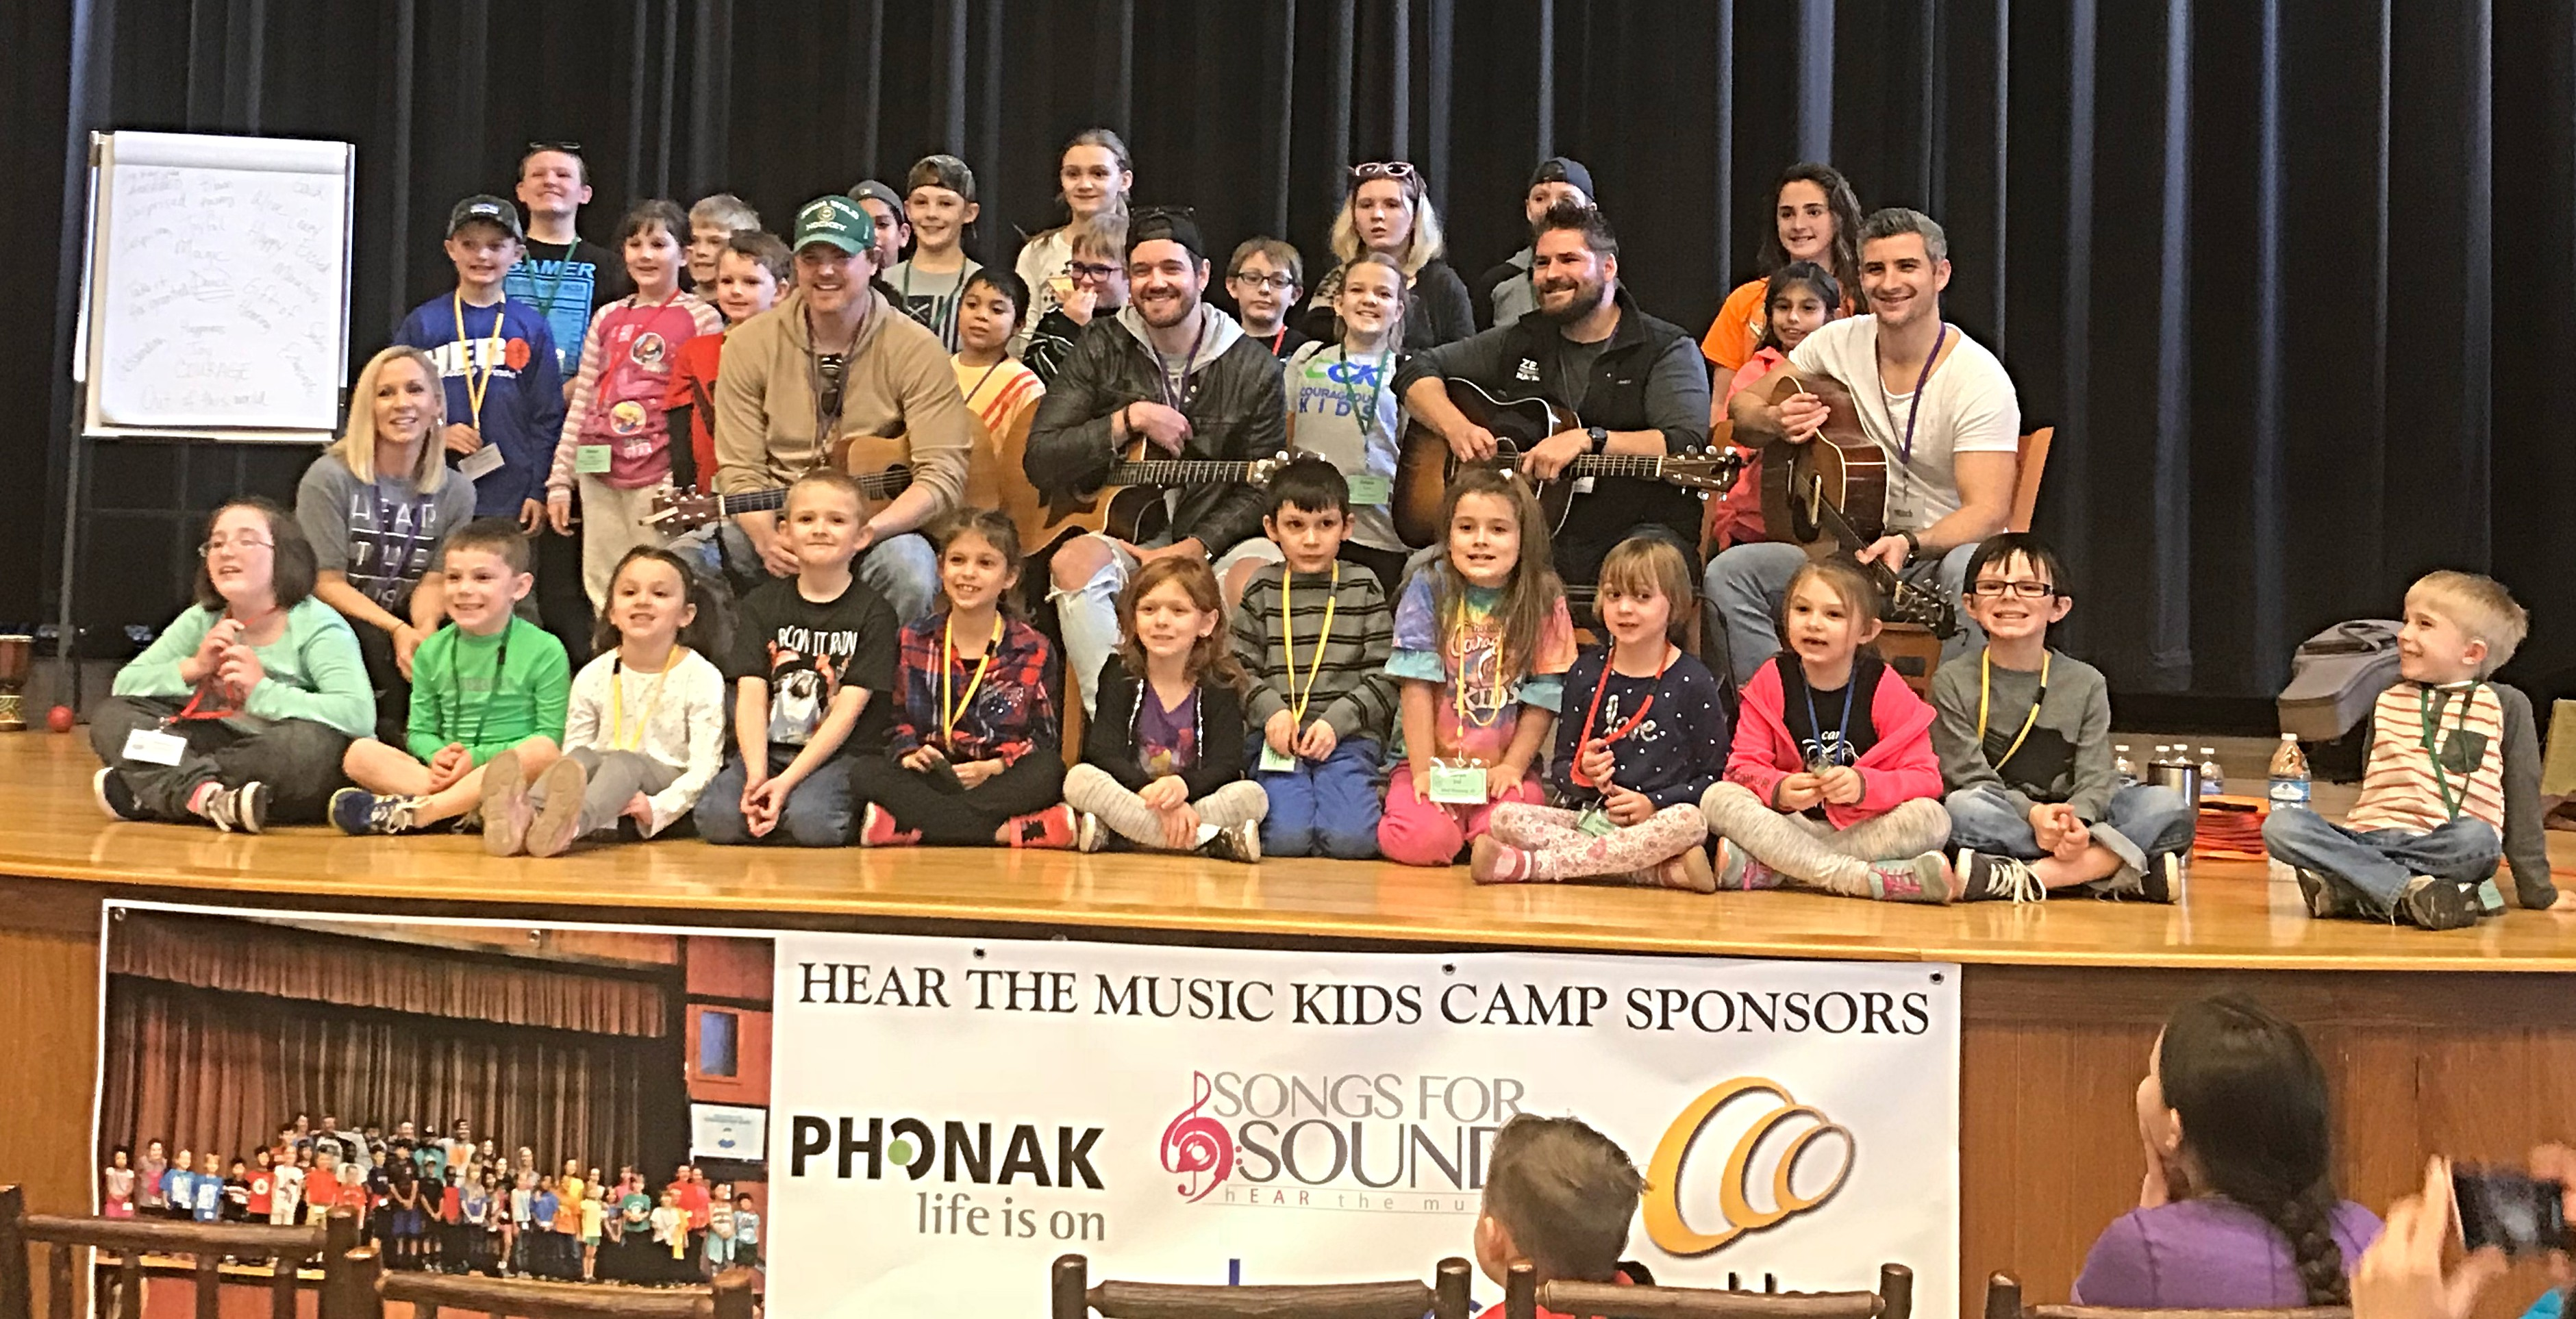 Hear the Music Kids Camp Sponsor - March 8-10, 2019